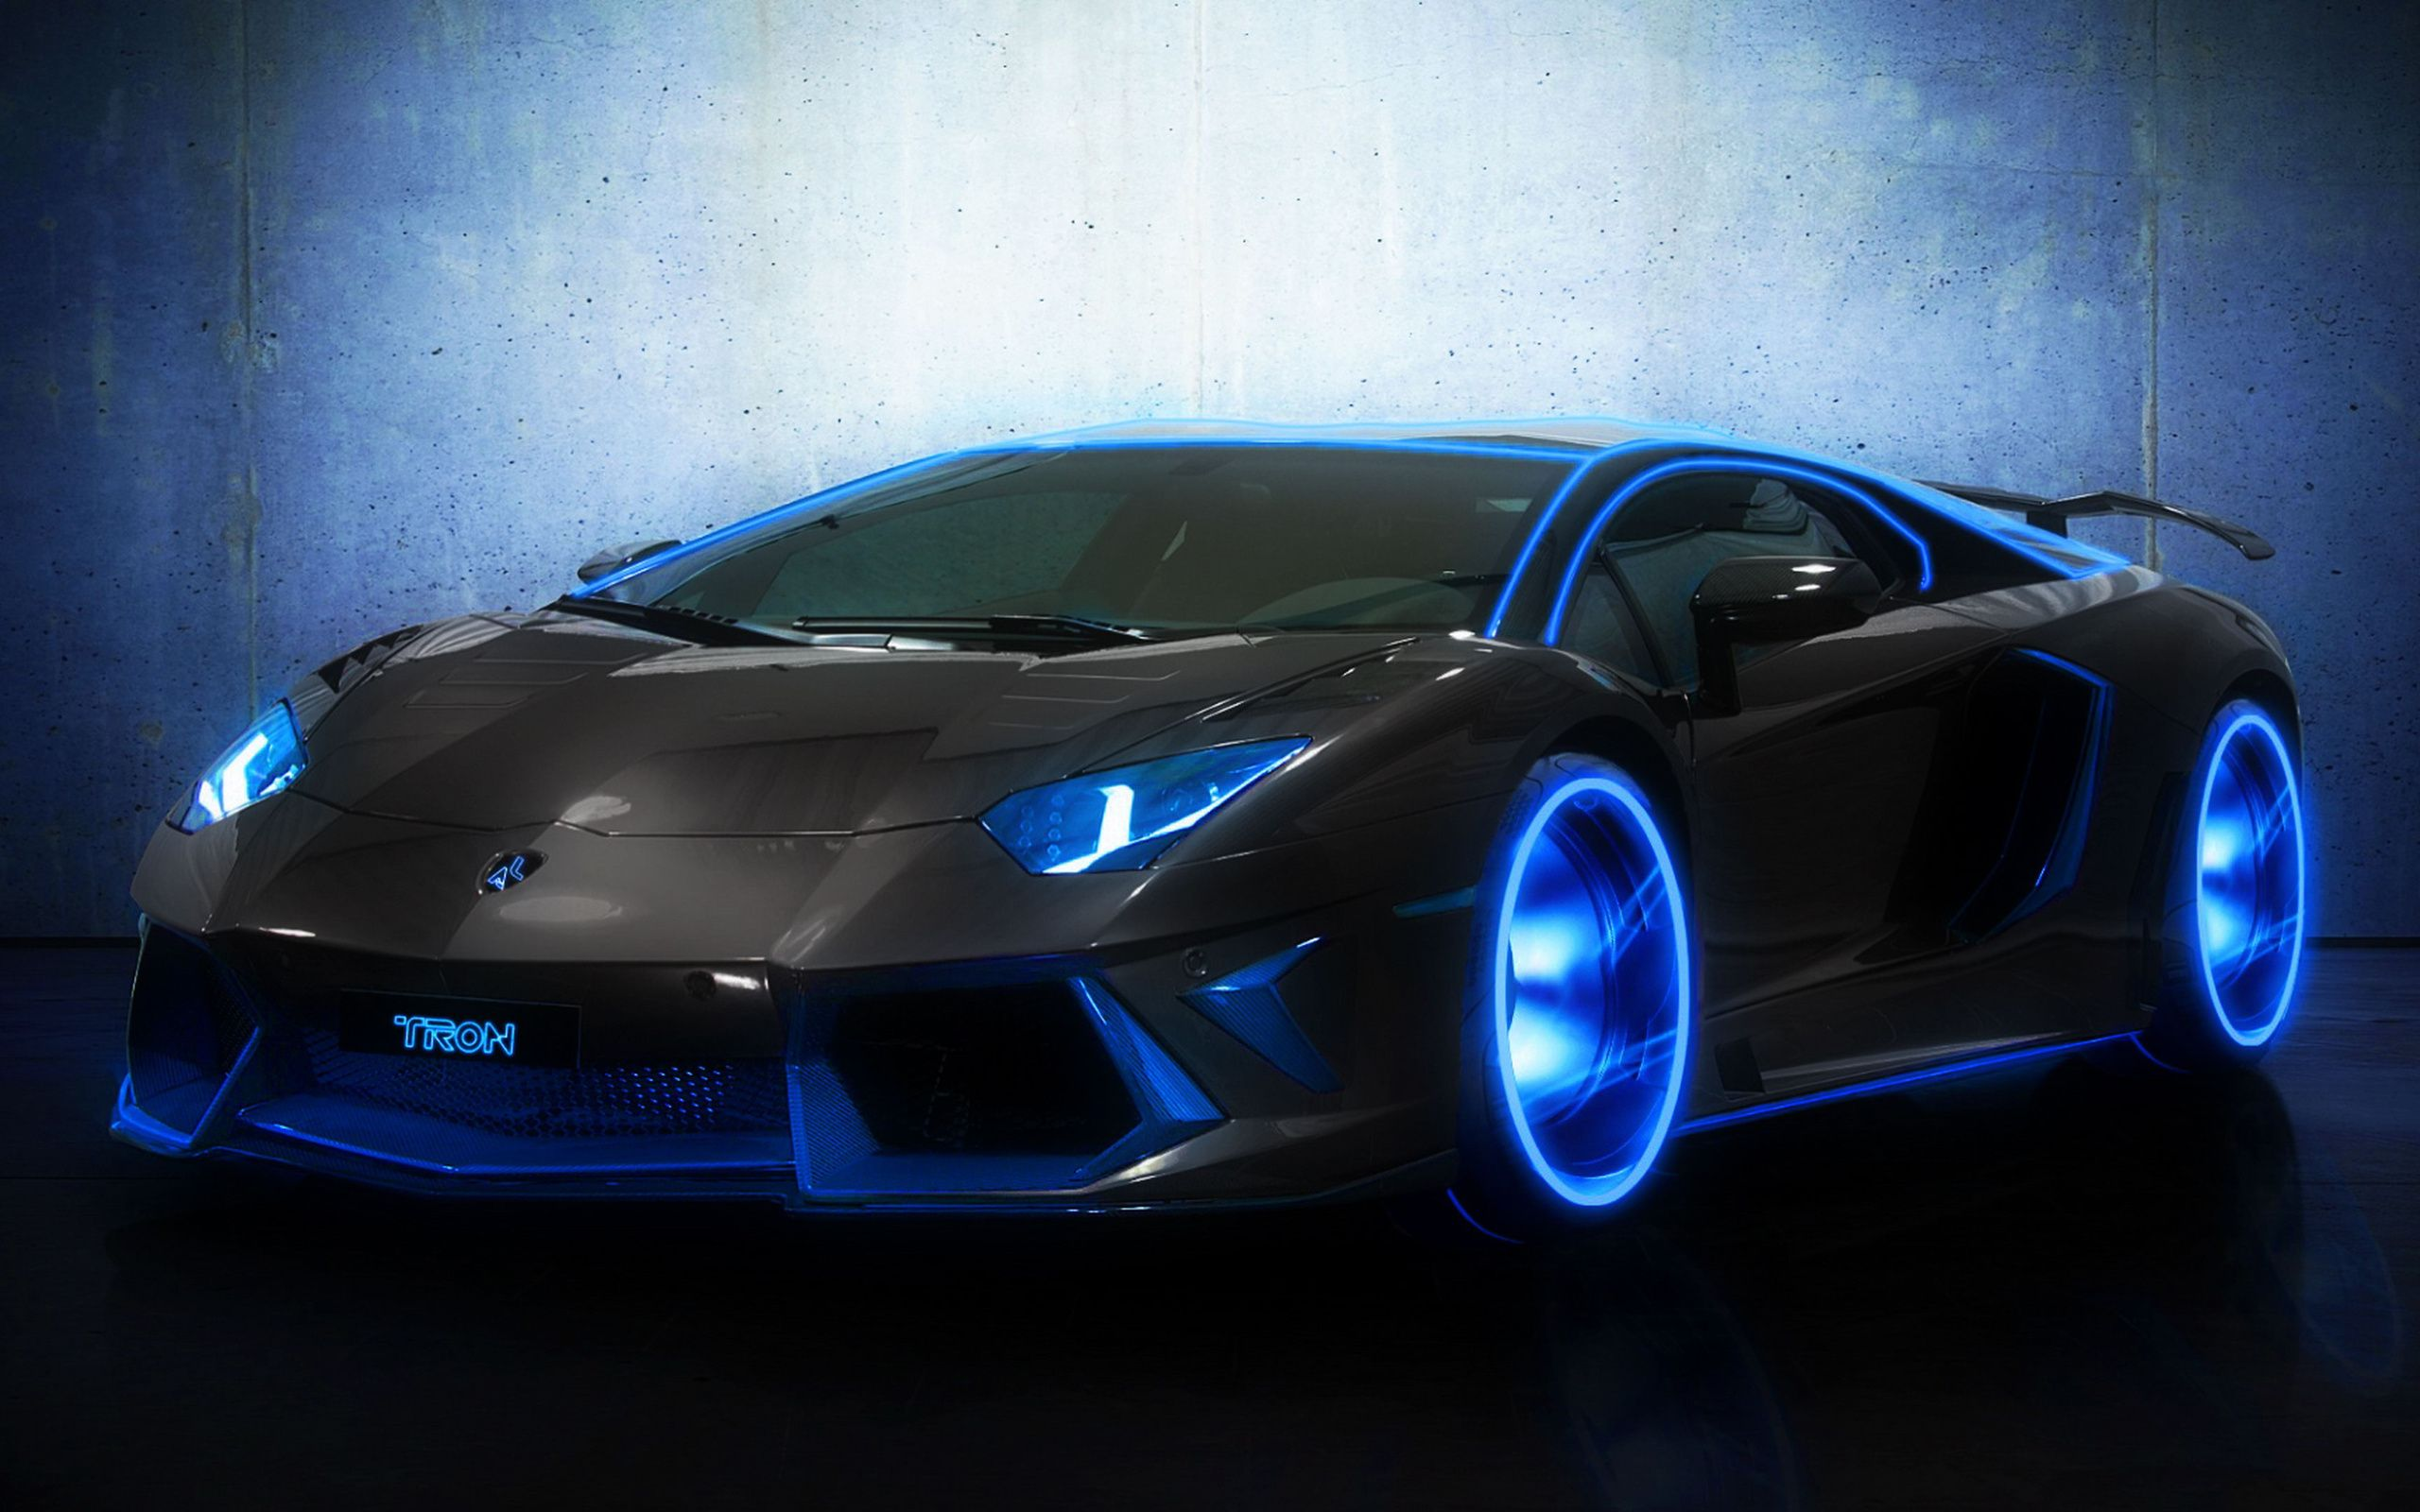 Blue Lamborghini Wallpapers High Quality Blue Lamborghini Sports Cars Lamborghini Lamborghini Egoista